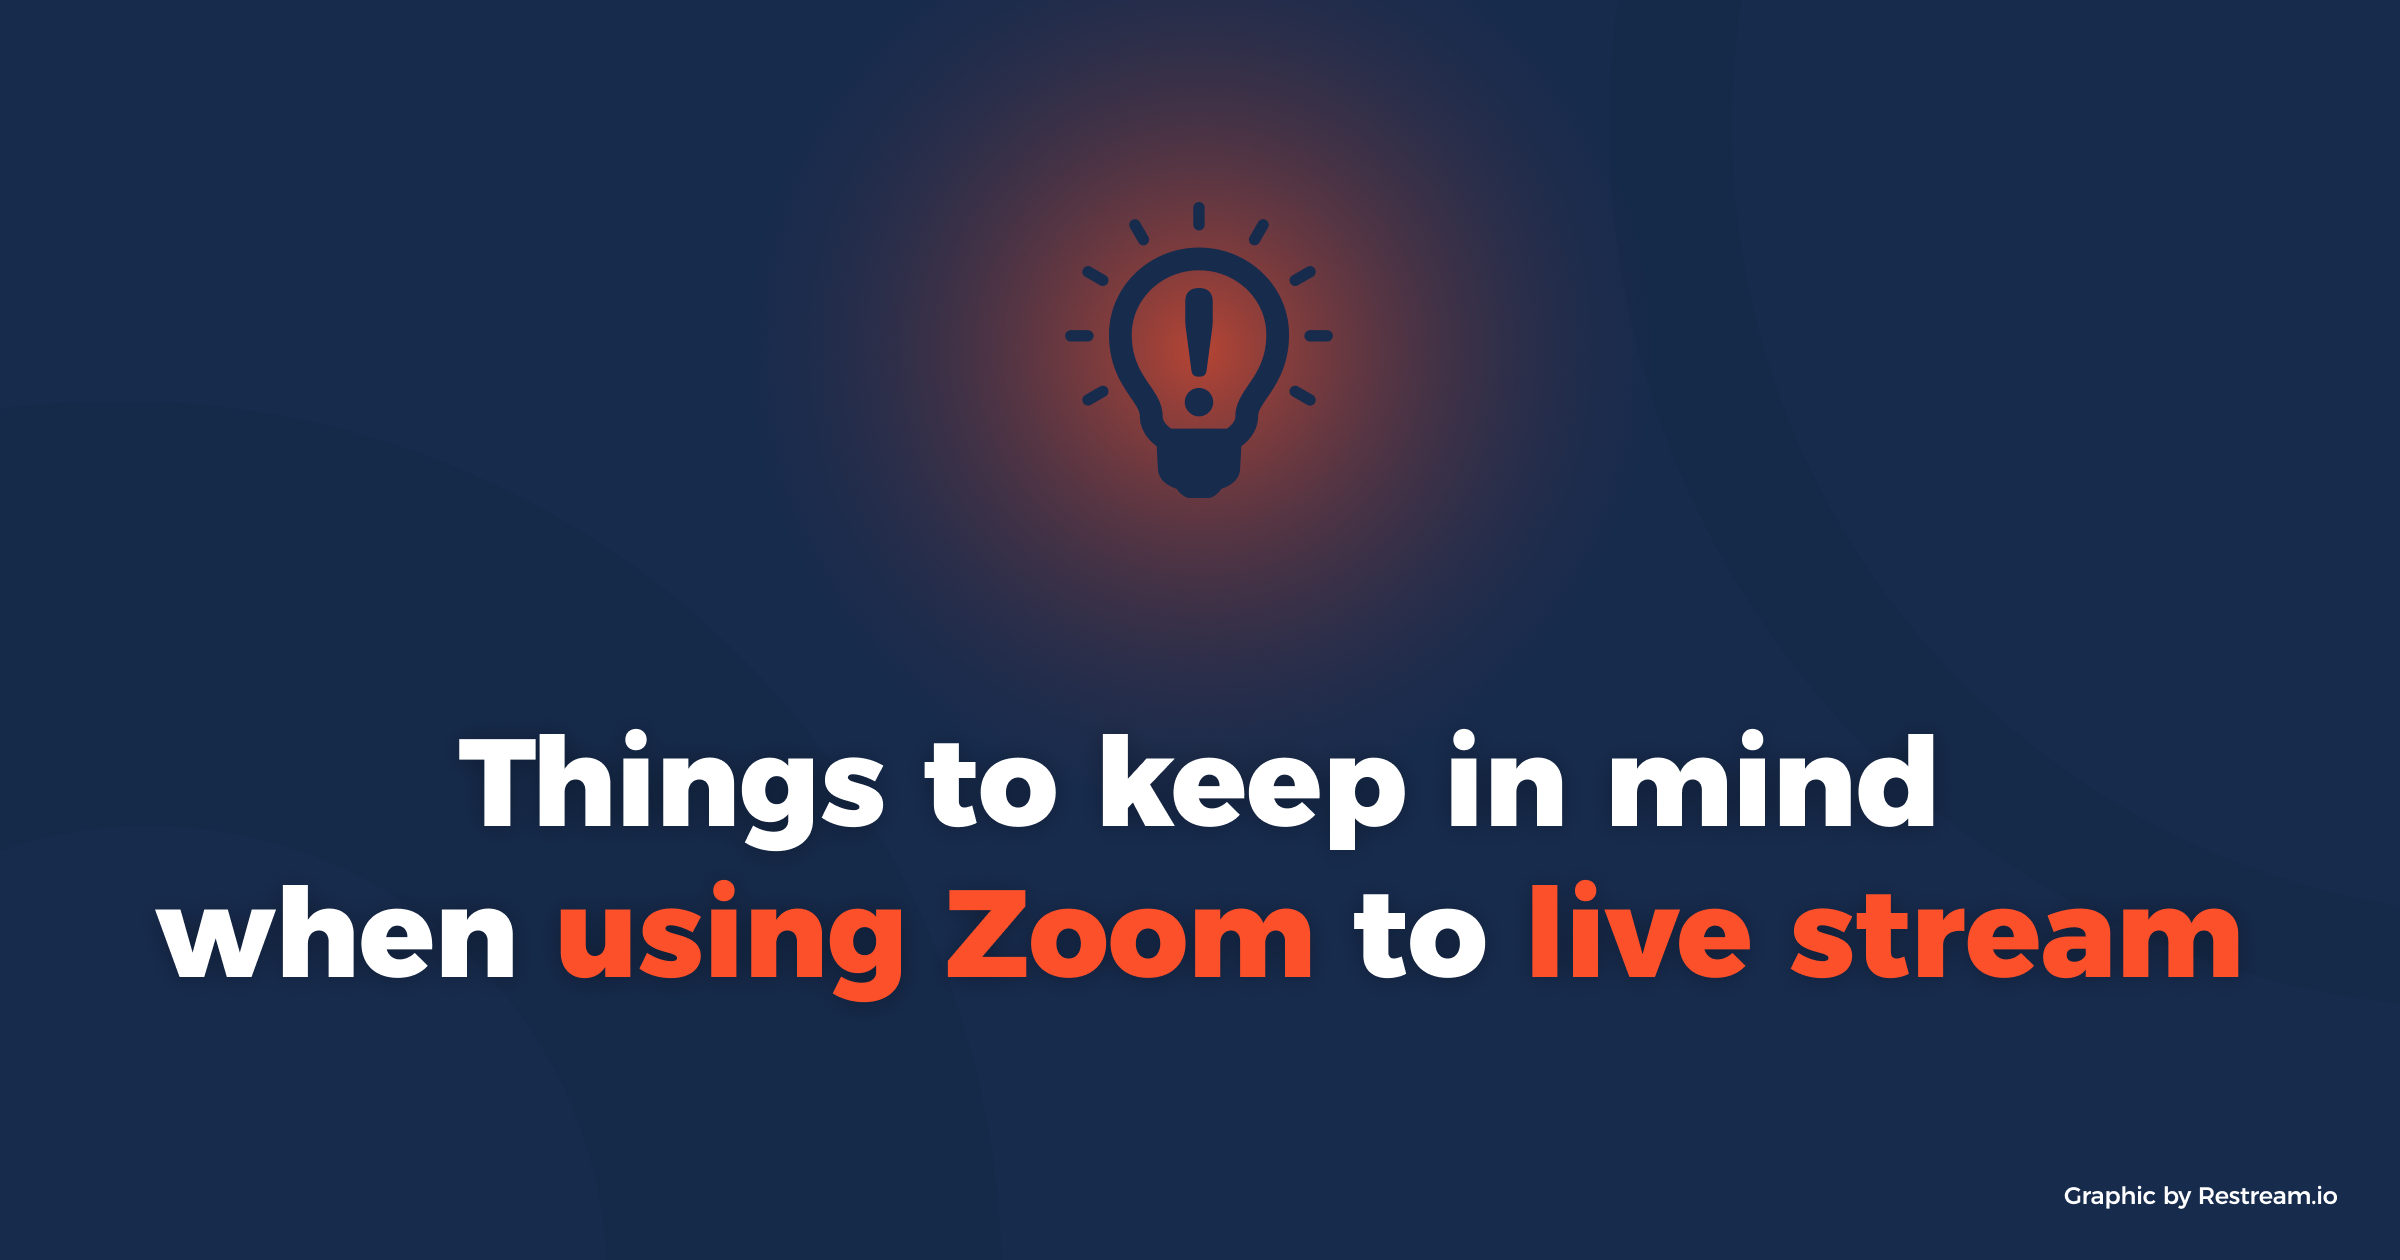 Things to keep in mind when using Zoom to live stream